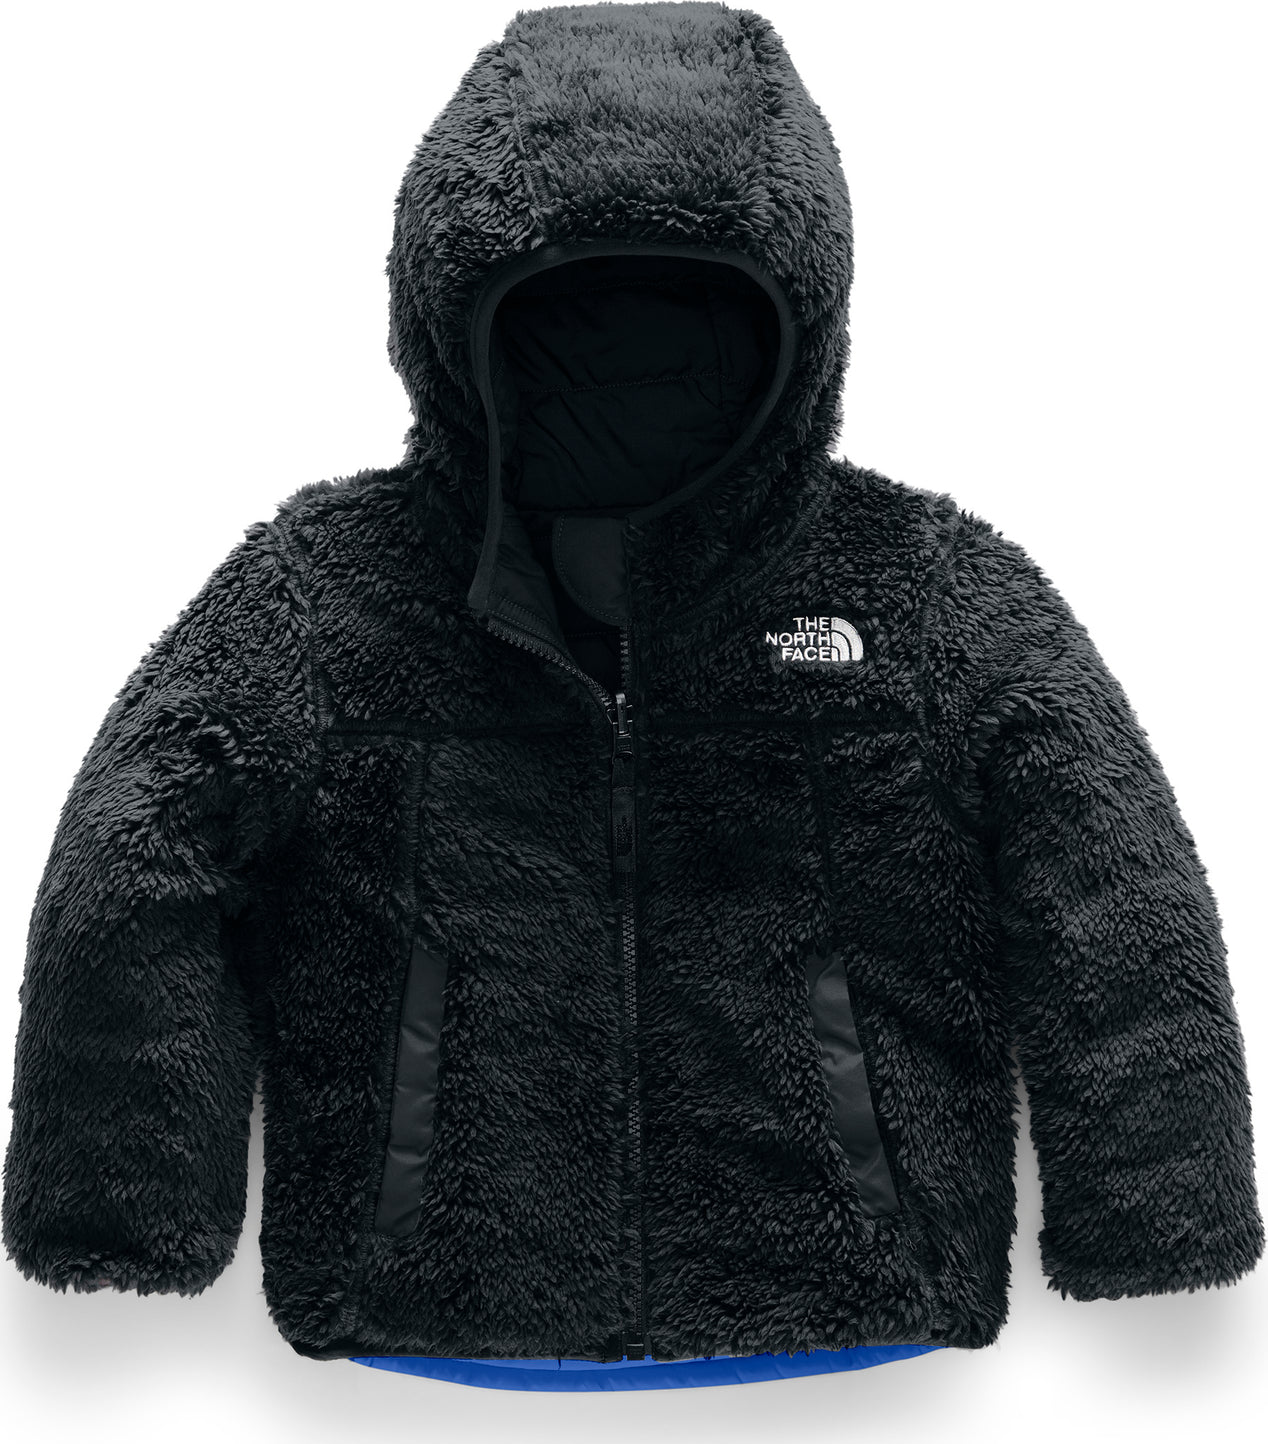 7a3fa0ccf The North Face Reversible Mount Chimborazo Hoodie - Toddler Boy's